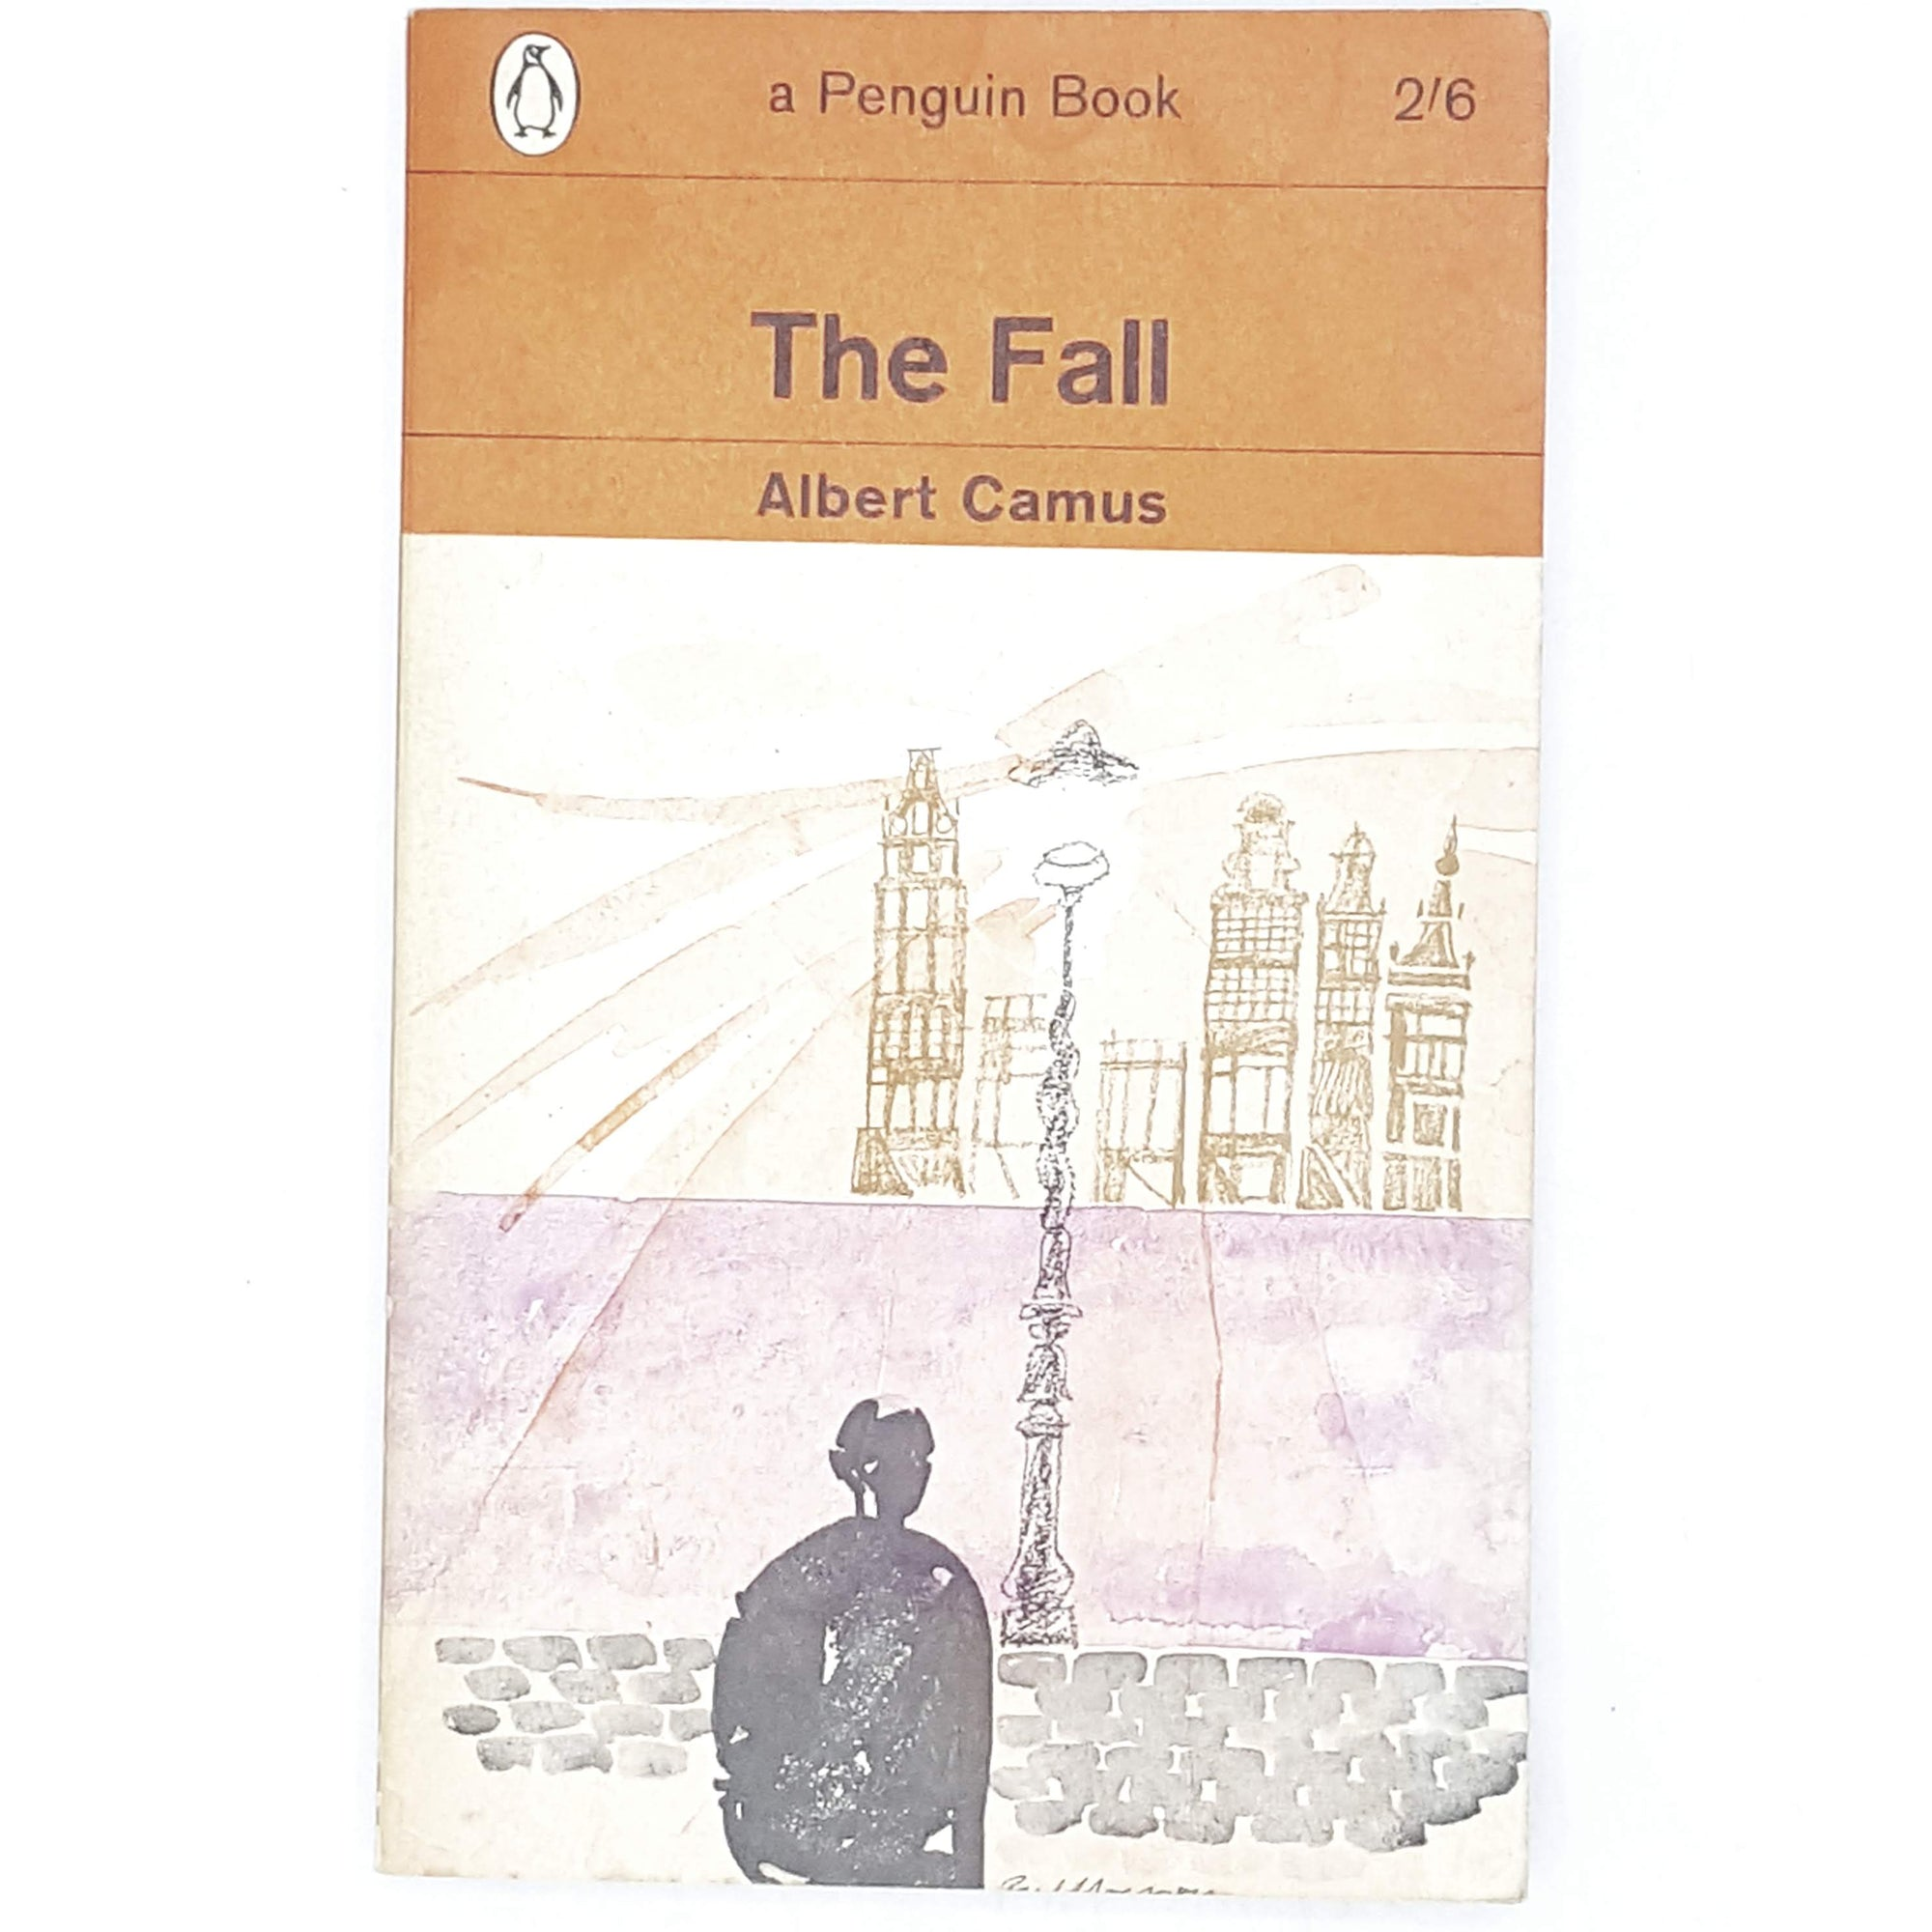 First Edition Albert Camus's The Fall 1963